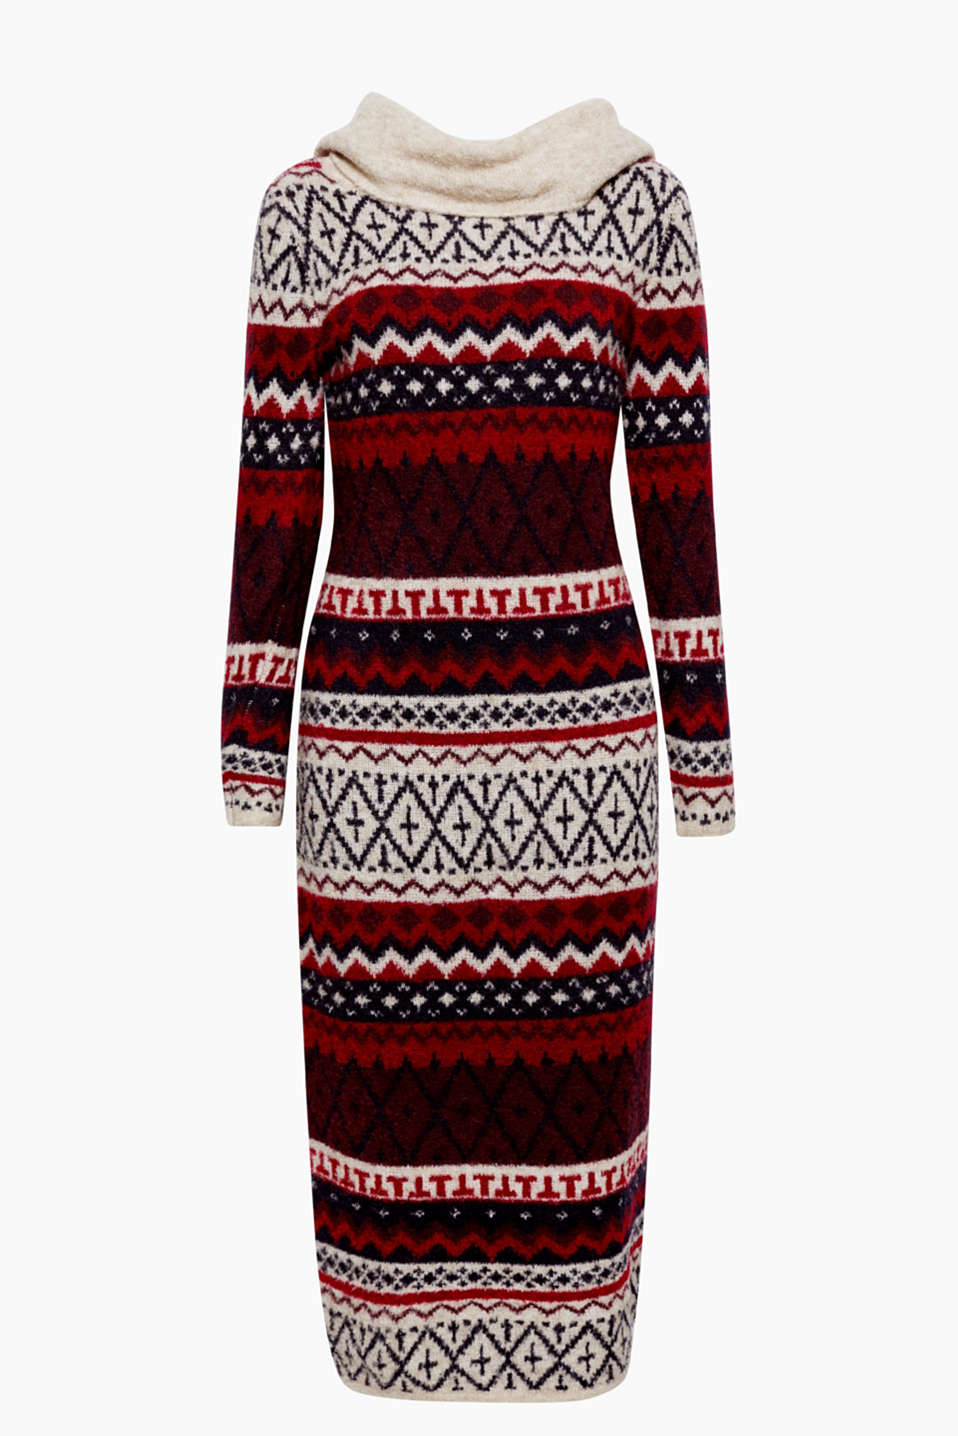 A cosy favourite dress: The soft yarn blend and the bright Norwegian pattern make this dress a highlight piece!